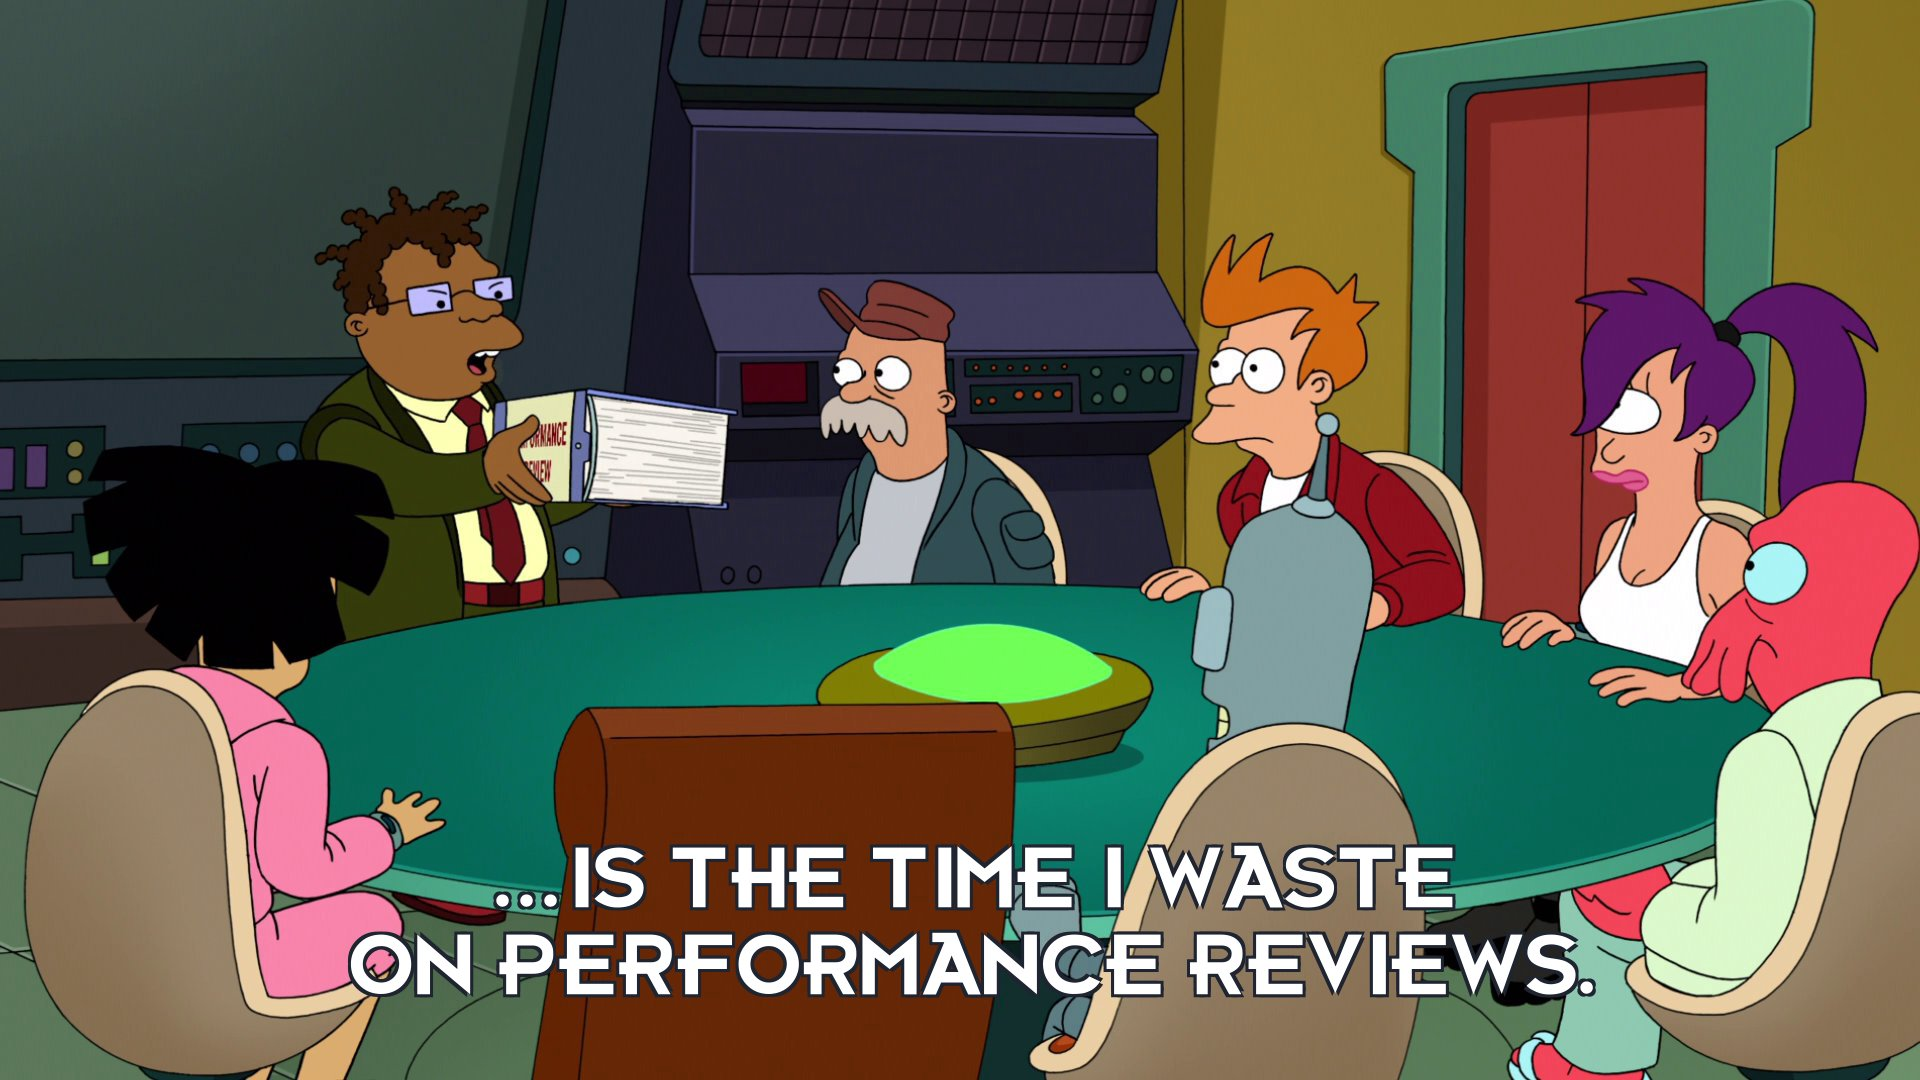 Hermes Conrad: ...is the time I waste on performance reviews.